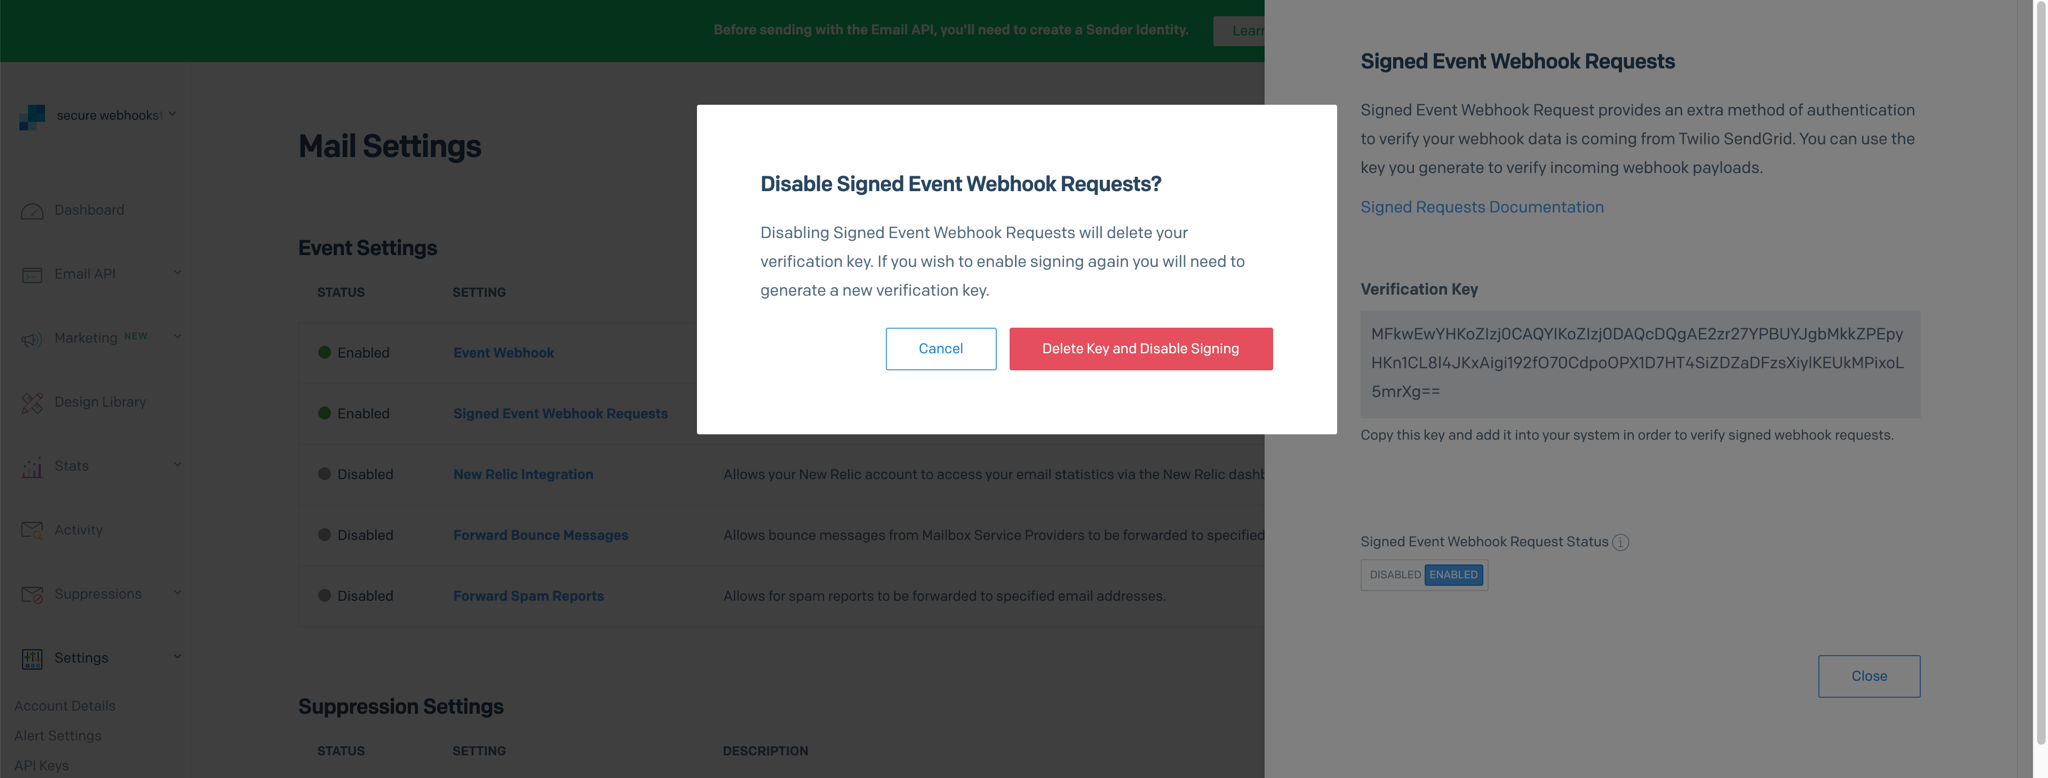 A modal asking you to verify that you wish to delete your key and no longer sign the Event Webhook. You can either click to cancel or click to confirm.